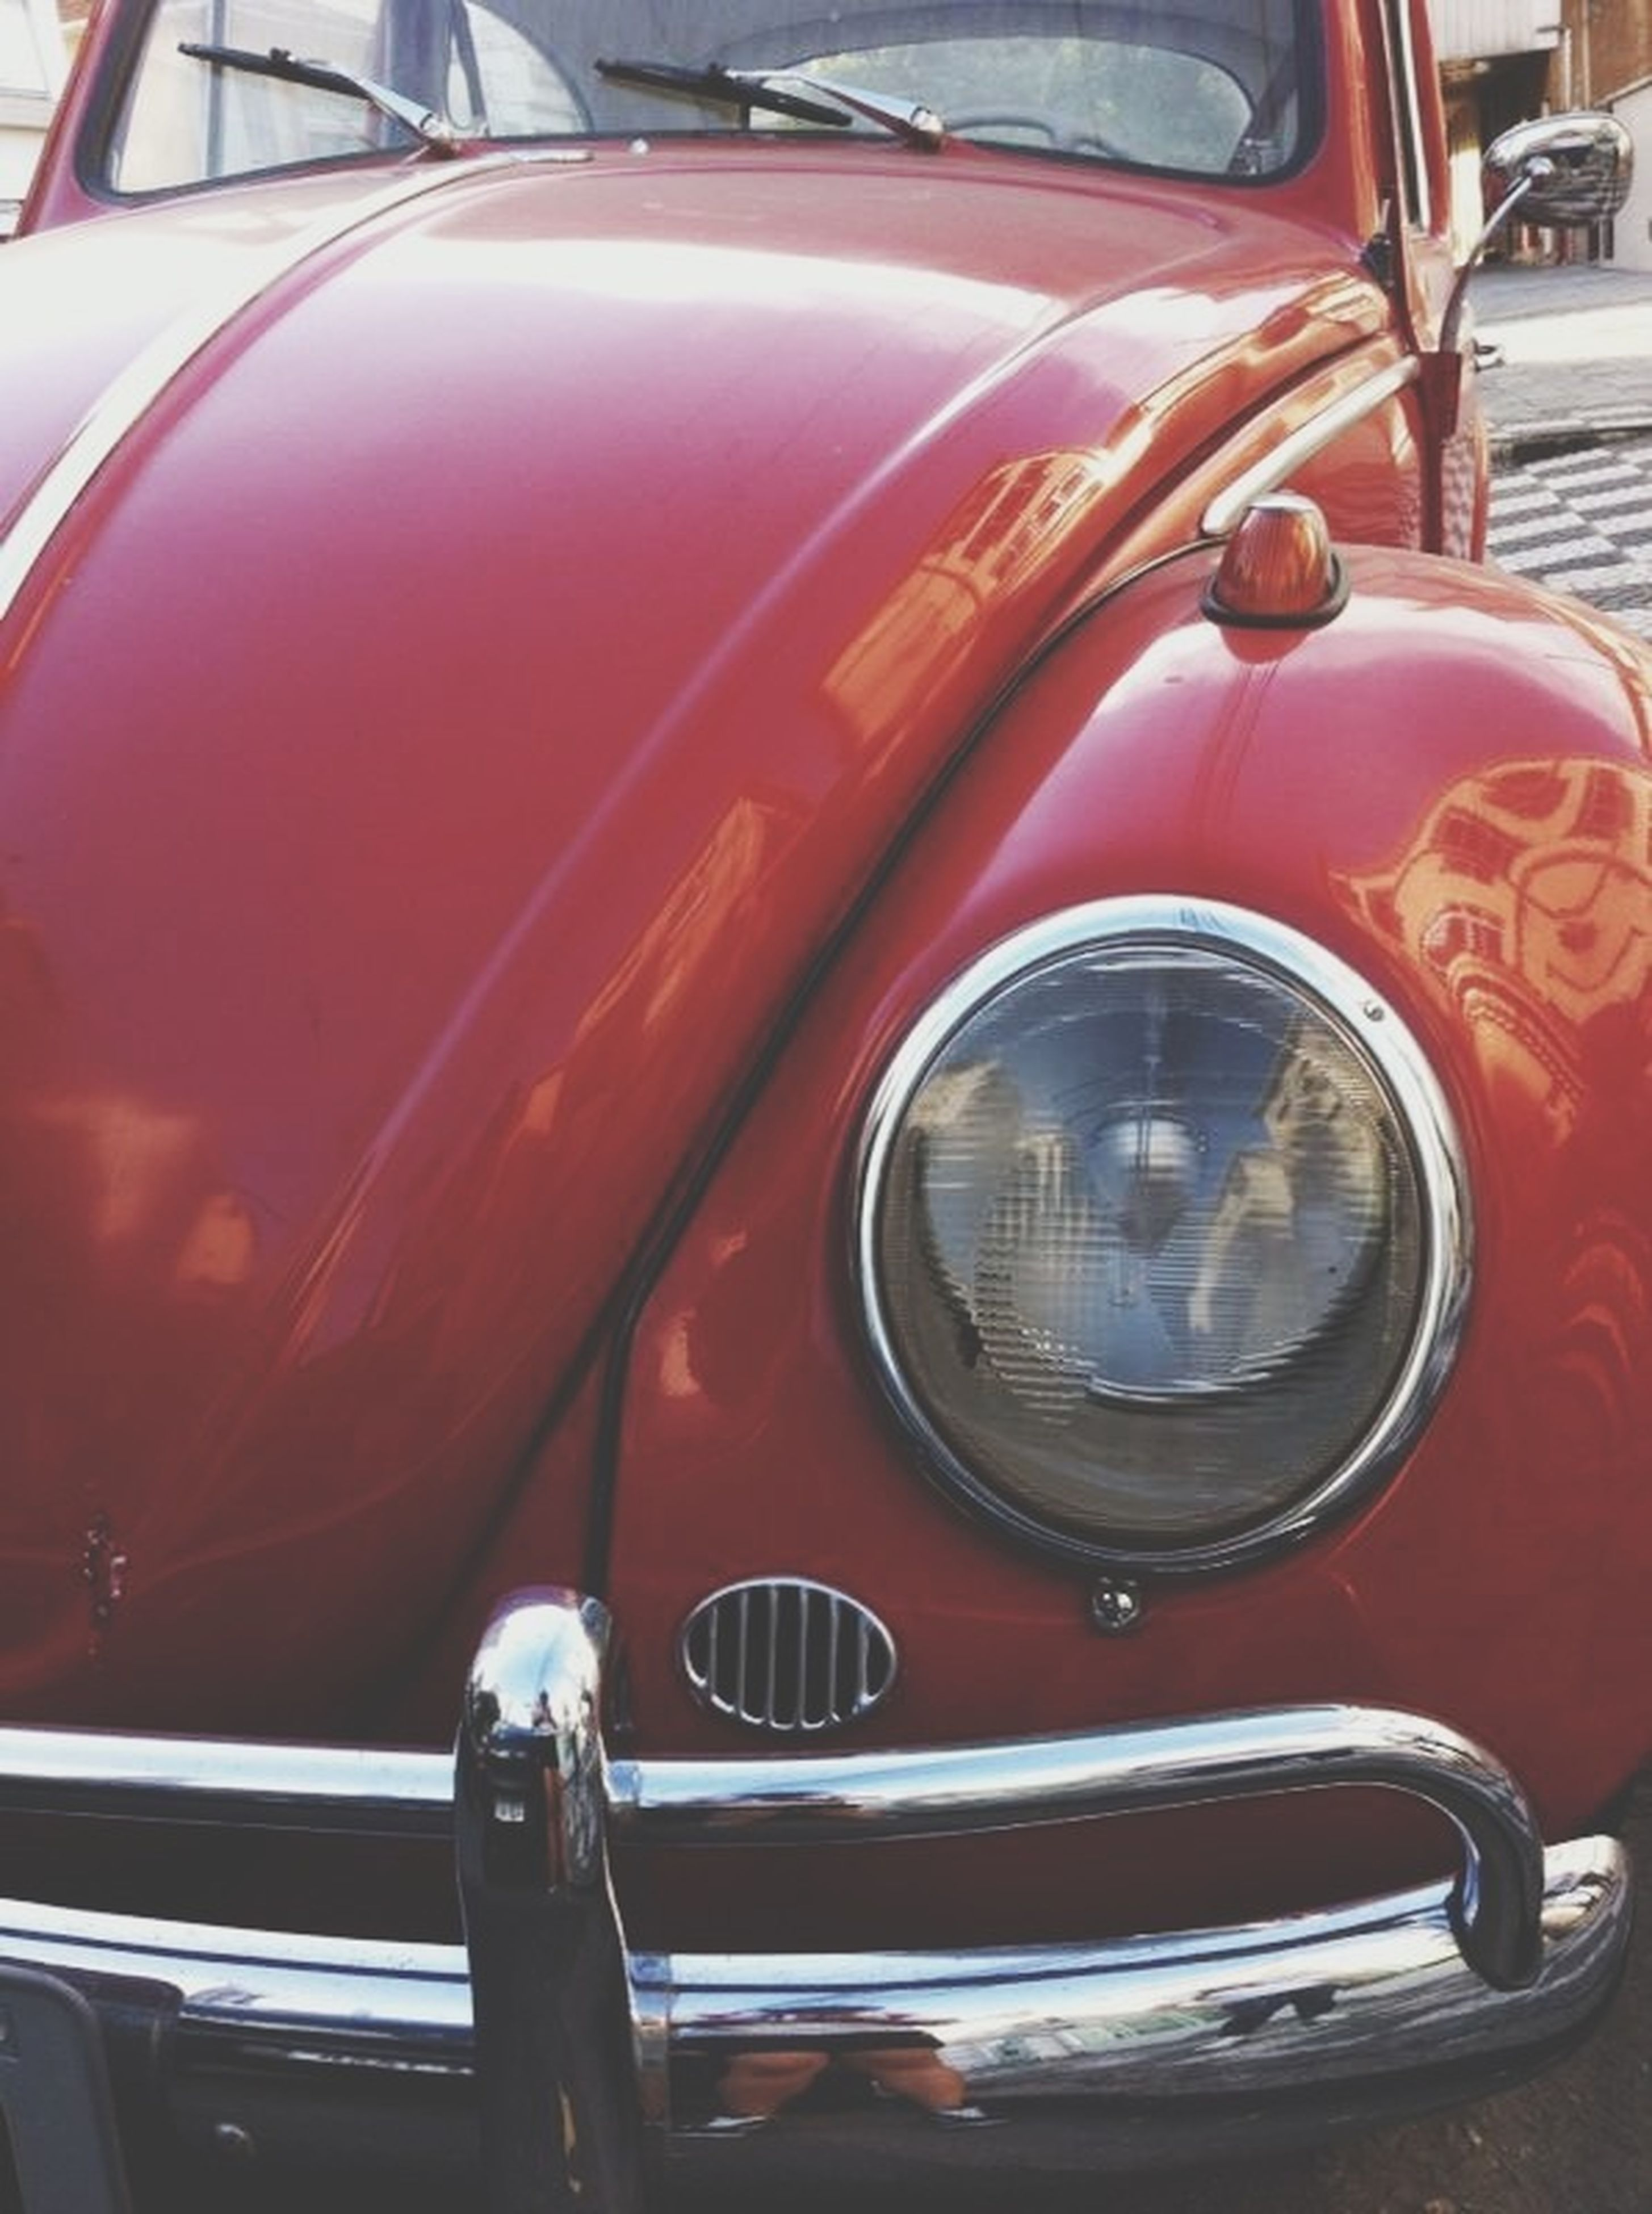 transportation, mode of transport, land vehicle, car, travel, stationary, headlight, vintage car, vehicle interior, part of, red, parking, street, parked, on the move, old-fashioned, side-view mirror, day, no people, close-up